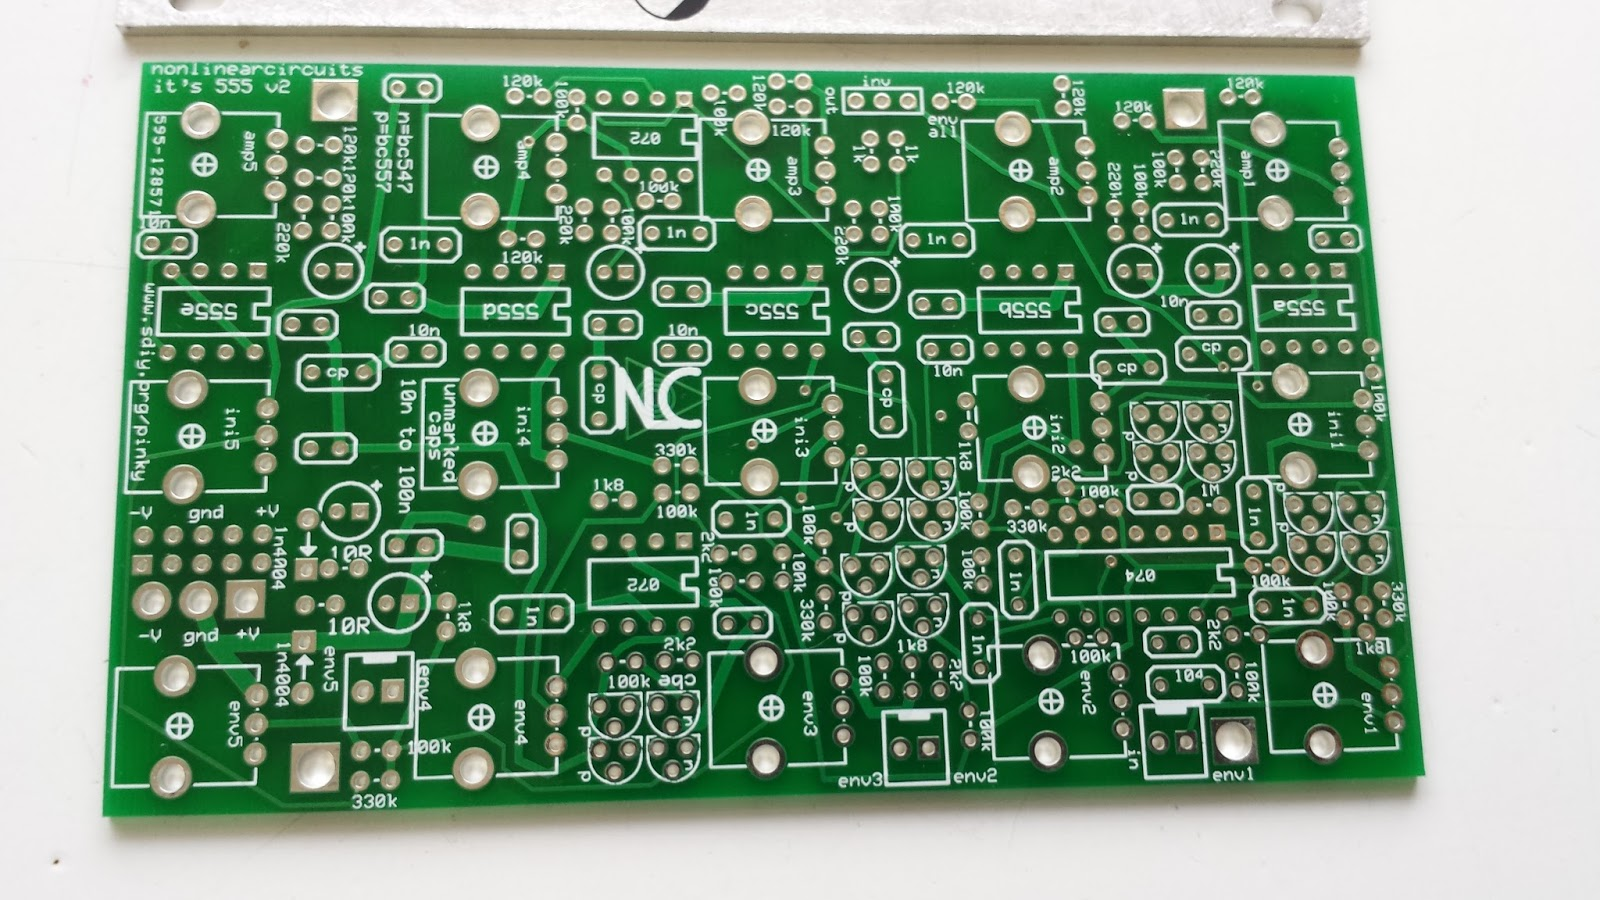 Jondent Exploring Electronic Music 555 Resonator Build Notes Step 2 The Ic Oneshot Timer Module Takes Its Name From This Integrated Circuit Is Used In A Variety Of Pulse Generation And Oscillator Applications